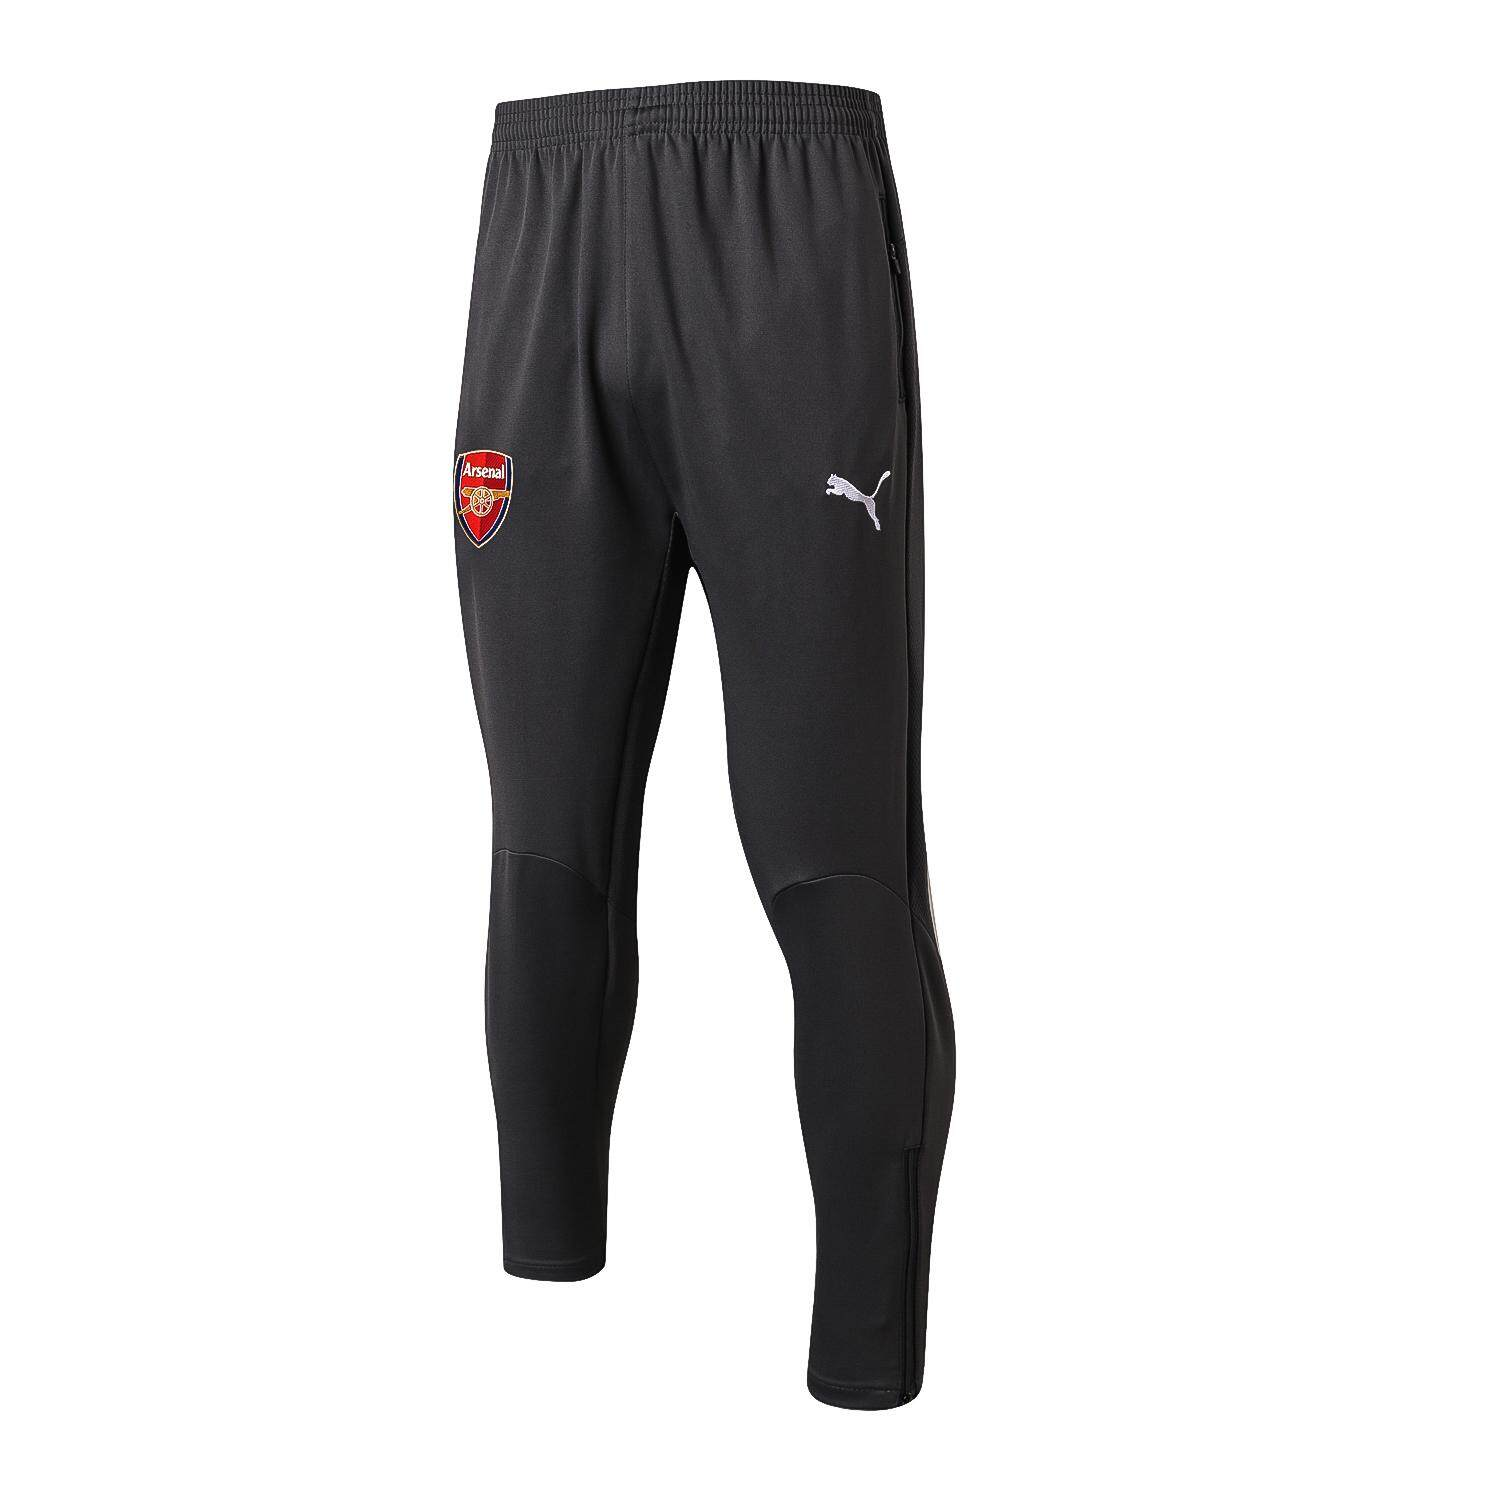 ทบทวน Top Quality 2018 Arsenalfc Training Pants Trousers Football Pants Oem America